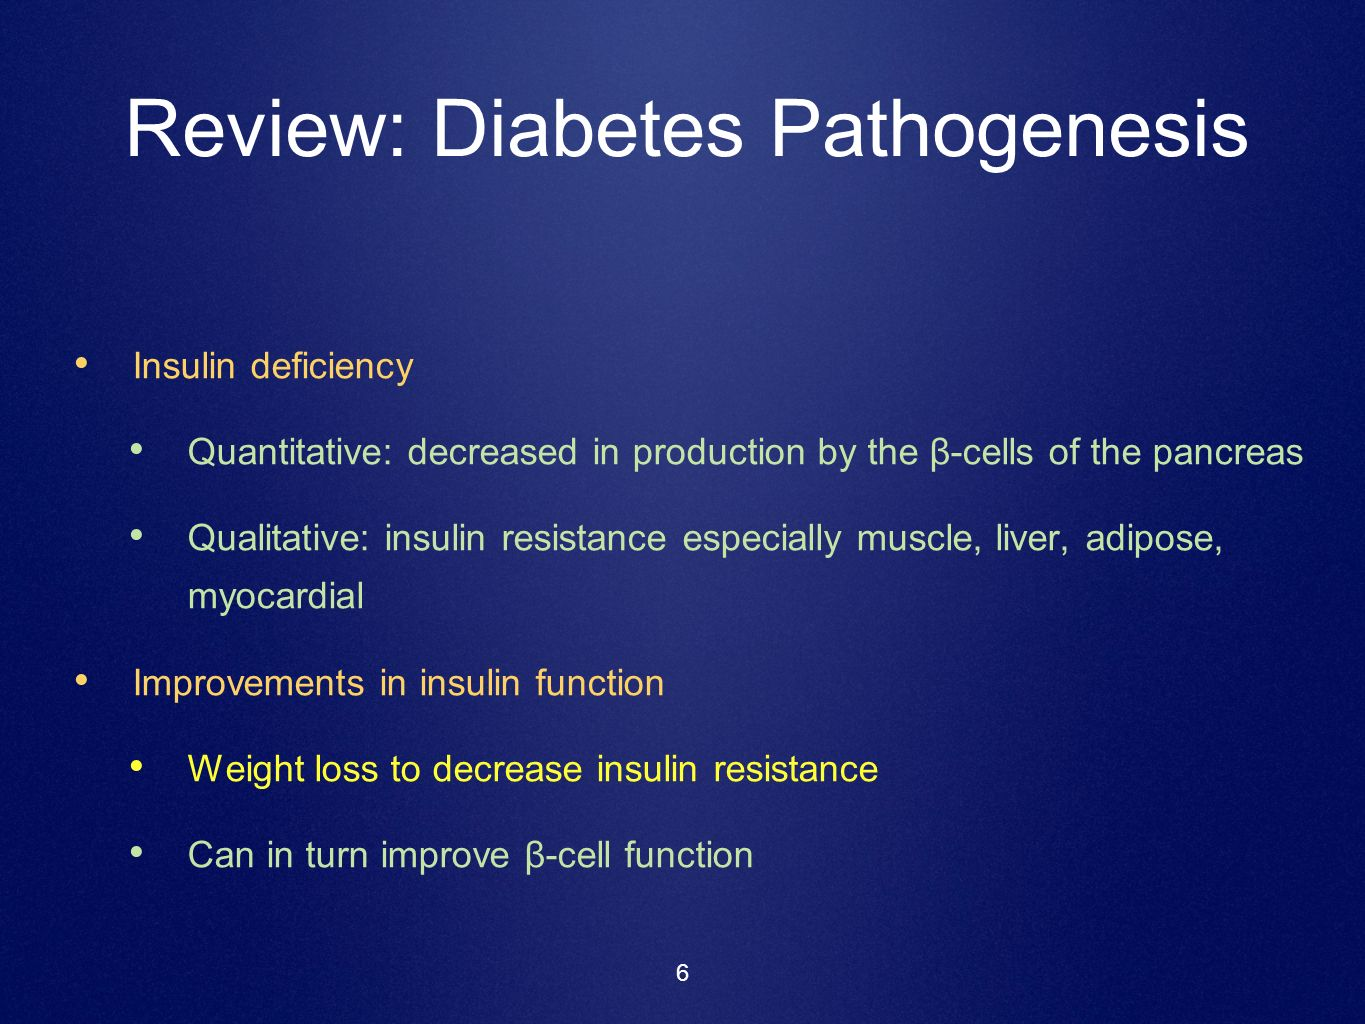 Review: Diabetes Pathogenesis